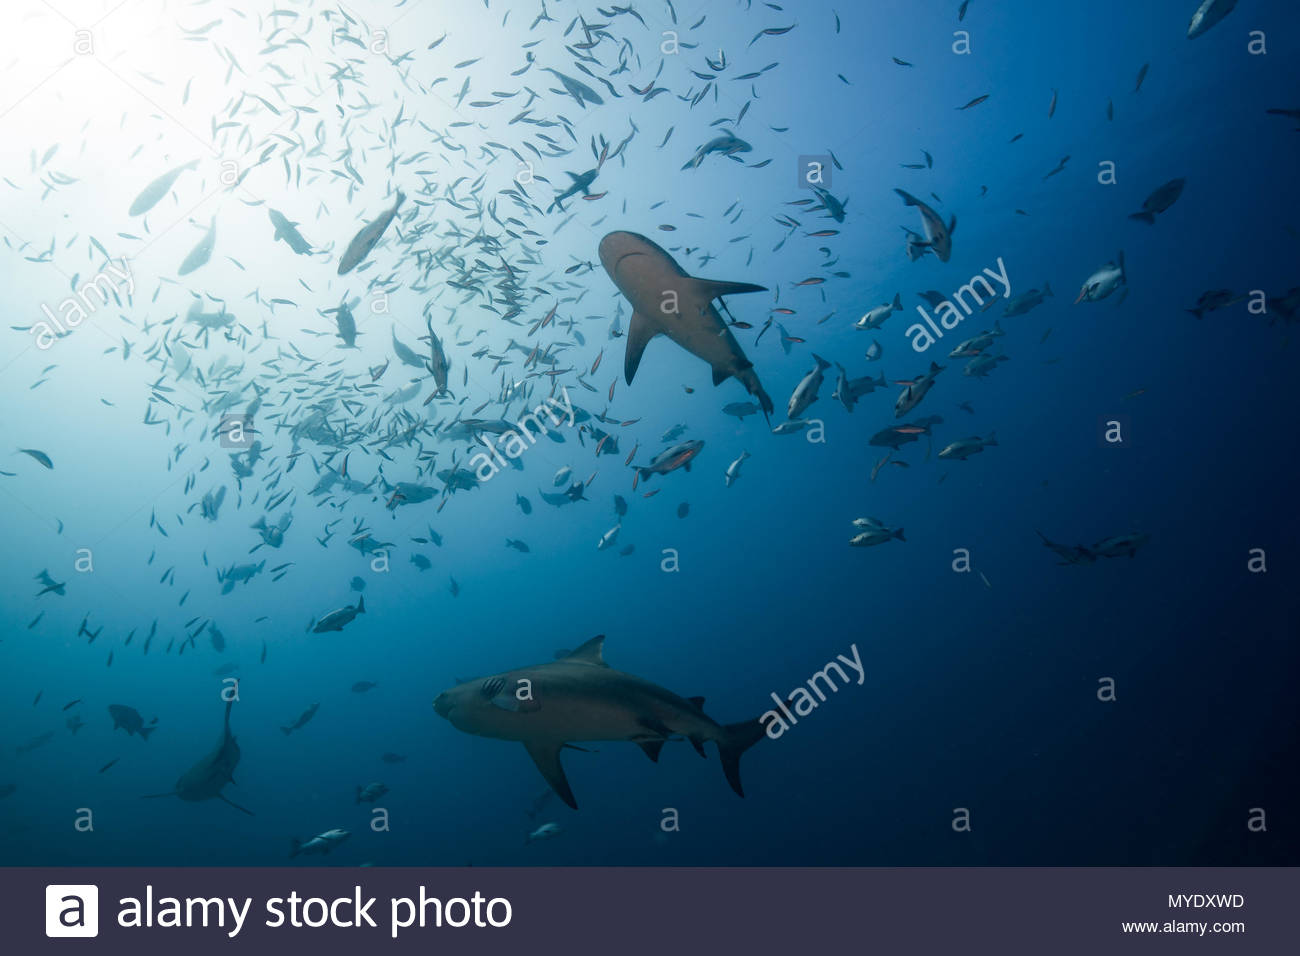 Bull sharks and a school of fish. - Stock Image